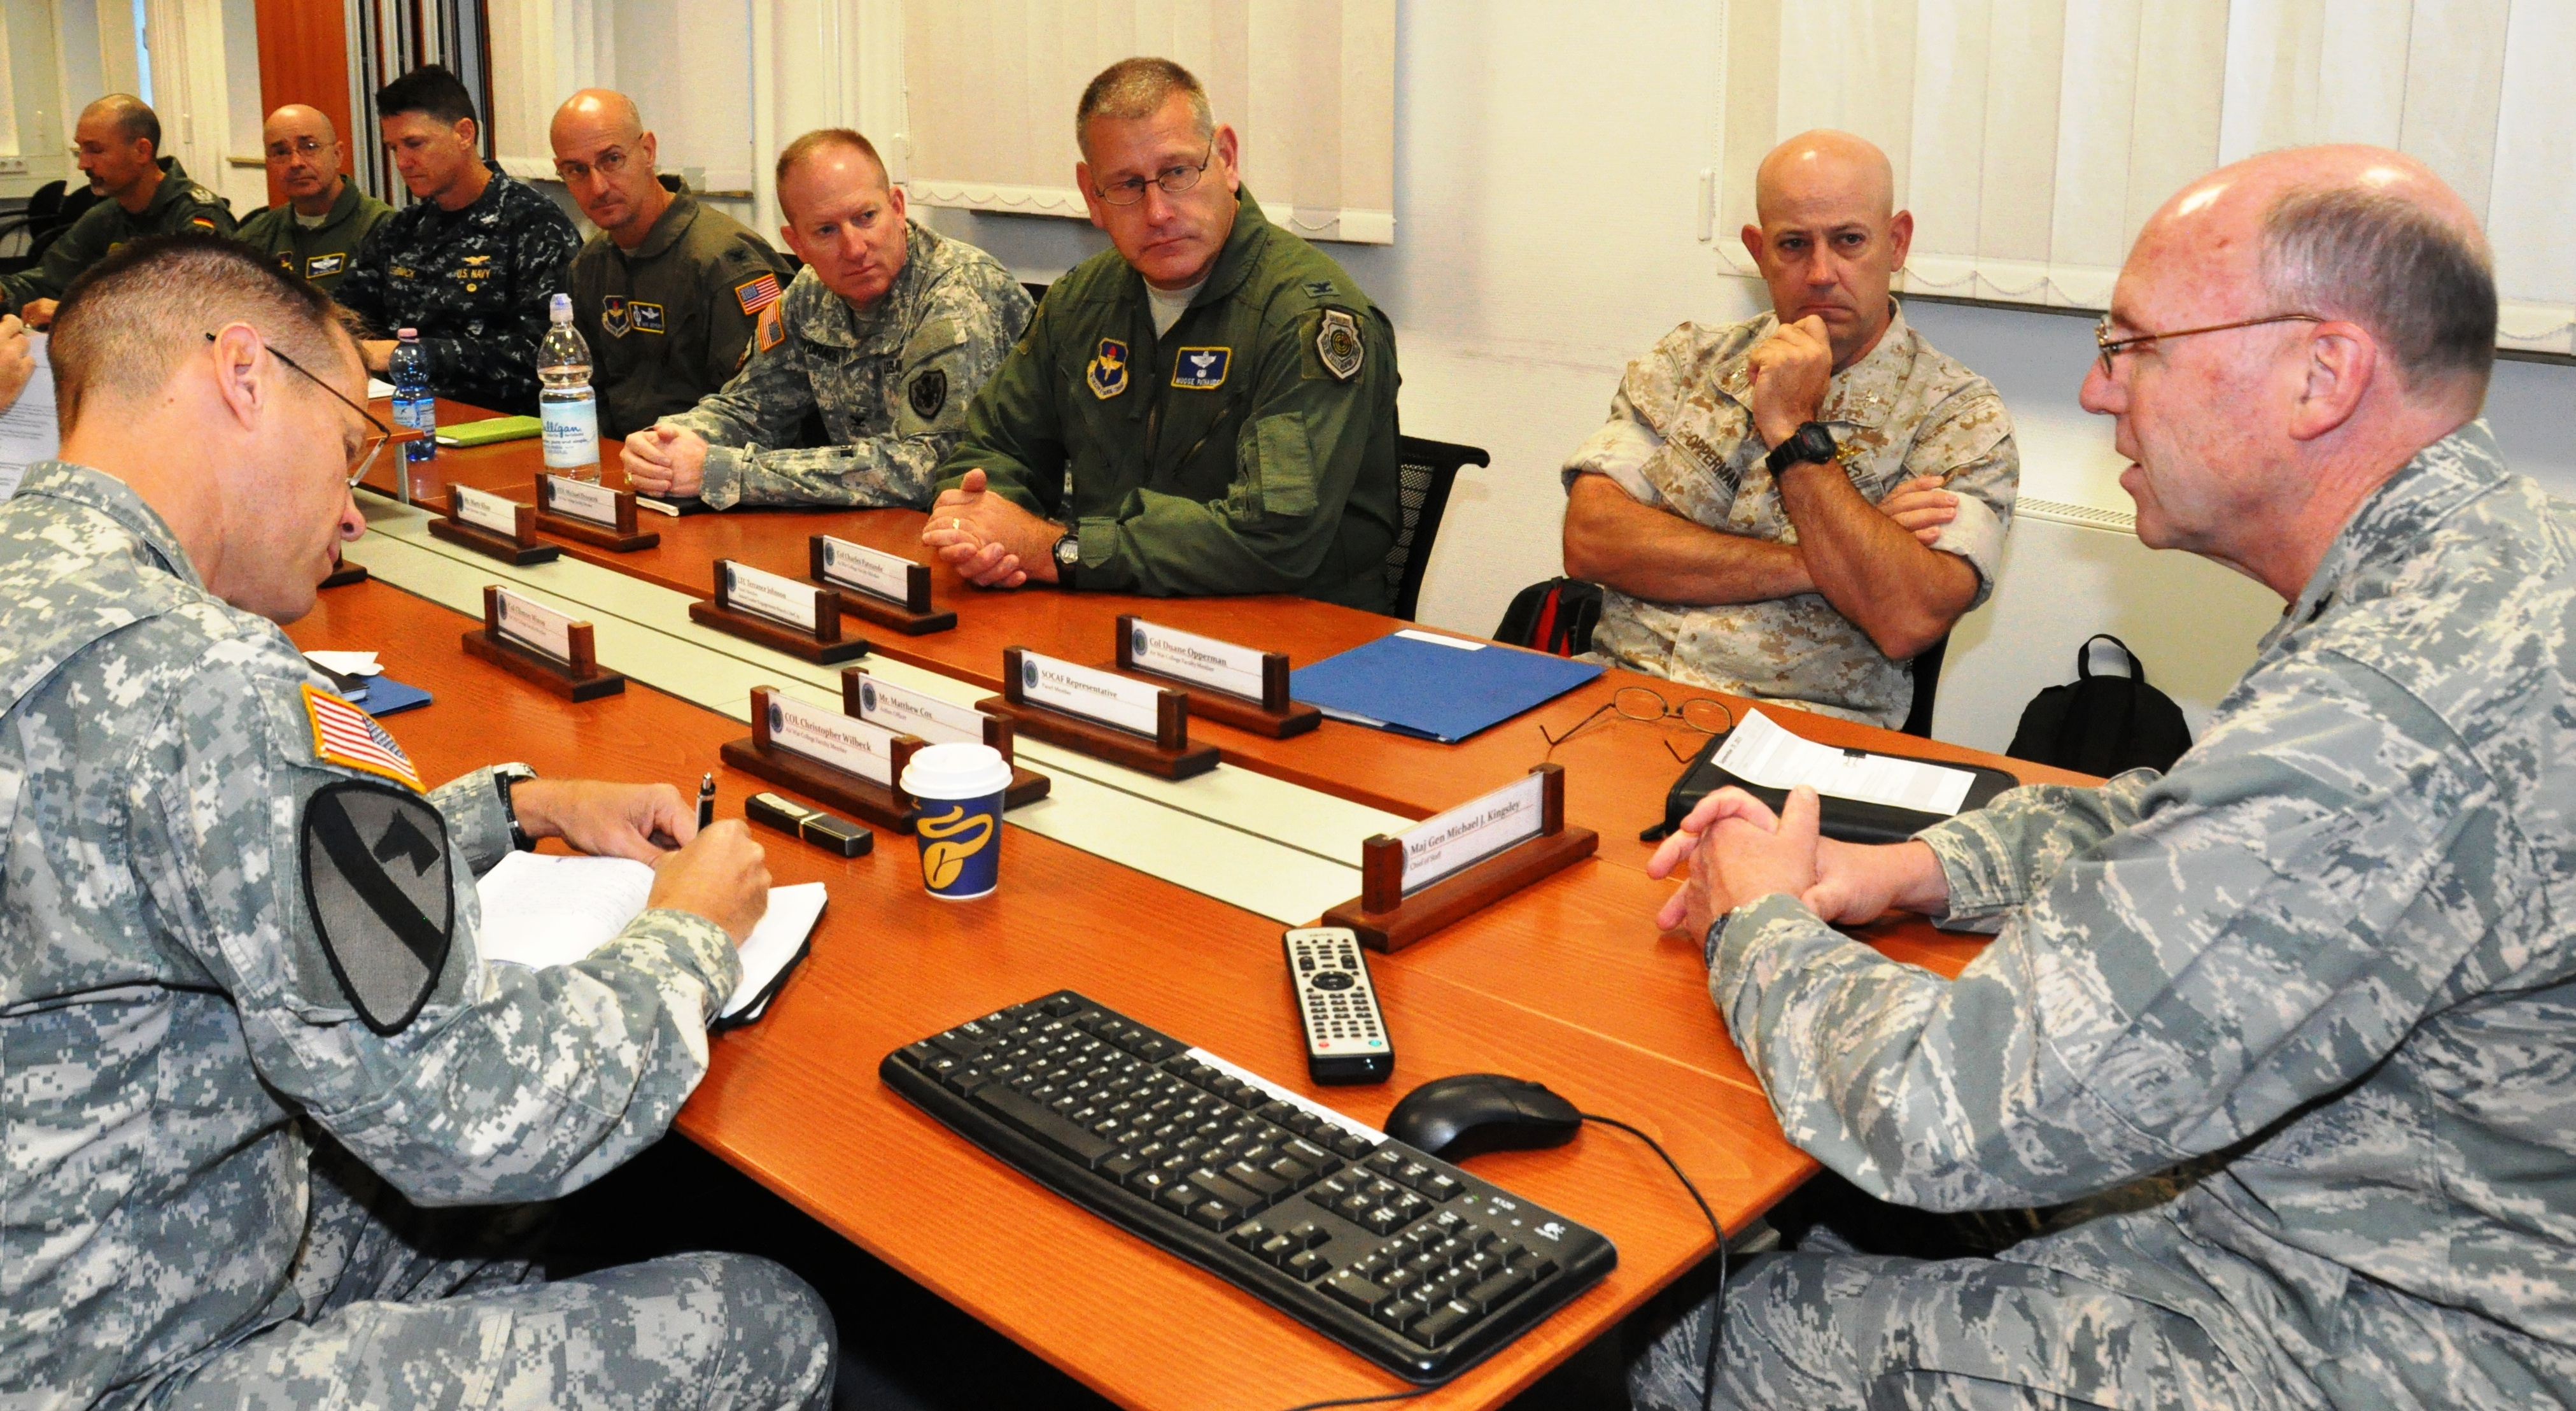 AFRICOM hosts faculty from the U.S. Air War College: U.S. AFRICOM Chief of Staff, U.S. Air Force Maj. Gen. Michael Kingsley (far right), welcomes faculty from the U.S. Air War College, Sept. 29, 2015.  The 16 faculty members were briefed by select AFRICOM staff about the commands mission and programs. (USAFRICOM photo by Brenda Law/Released)